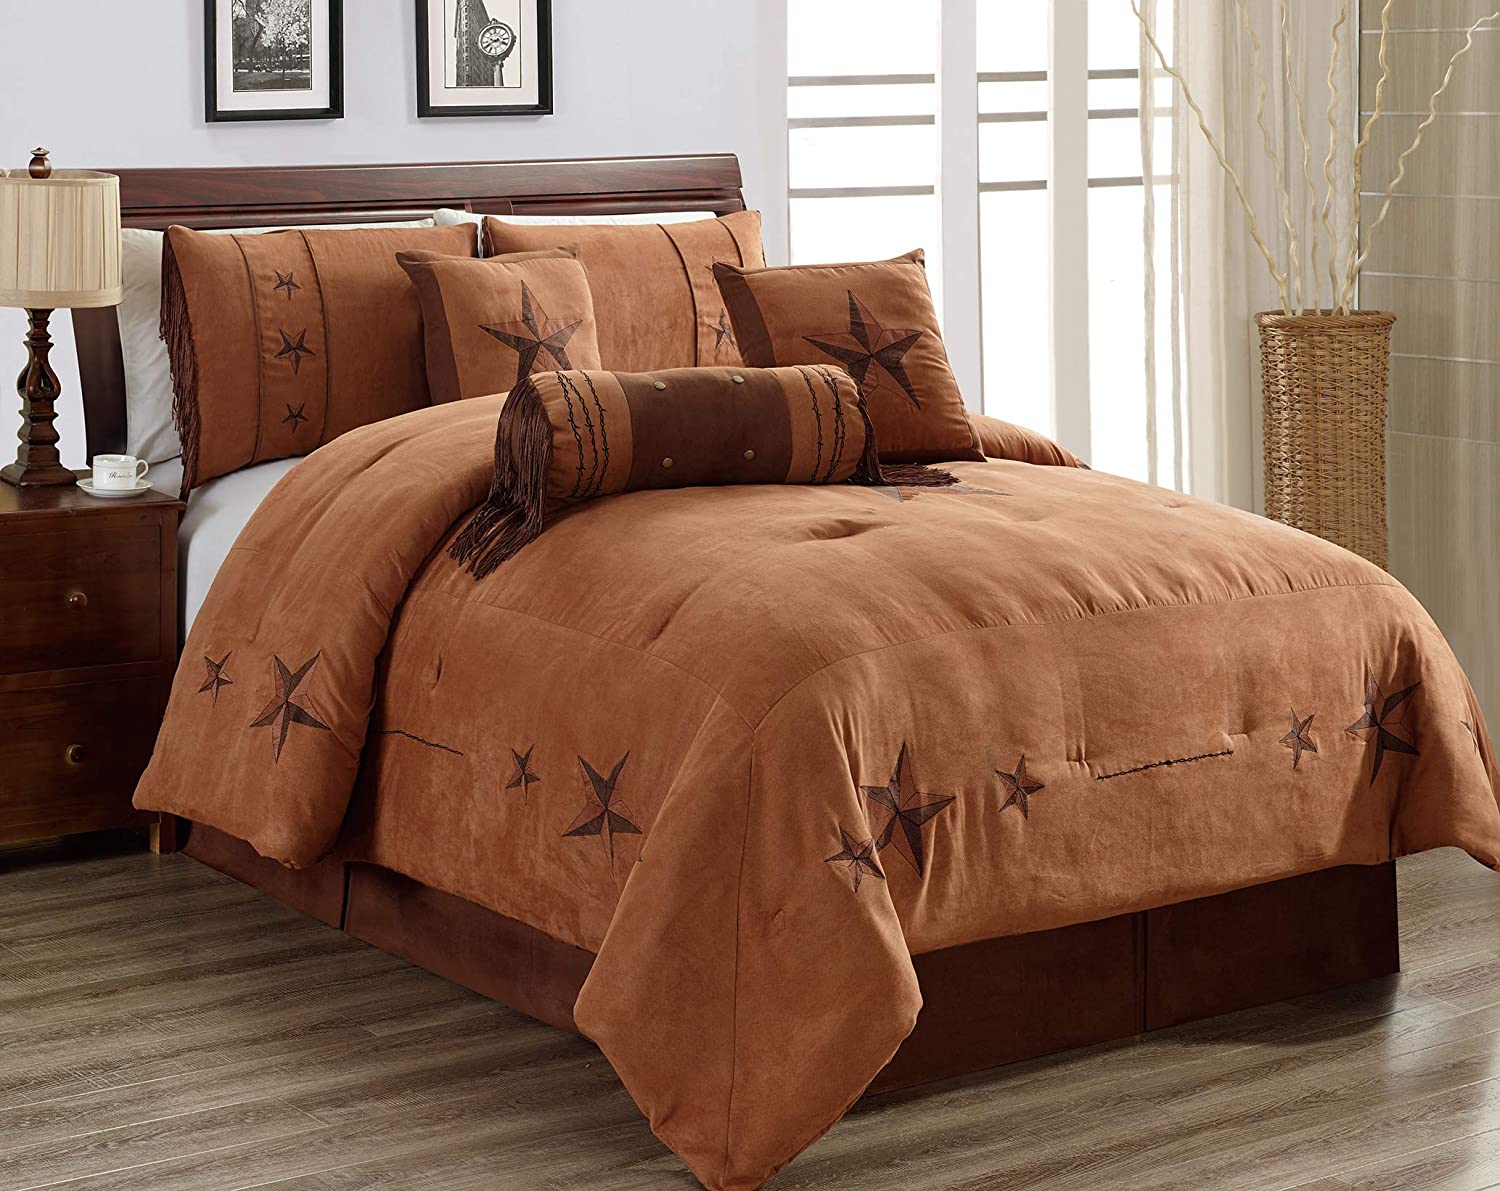 Amazon Com 7 Piece Full Size Chocolate Brown Gold Bedding Rustic Lone Star Comforter Set 90 X 86 Micro Suede Western Decor Lodge Bed In A Bag For Double Bed Home Kitchen